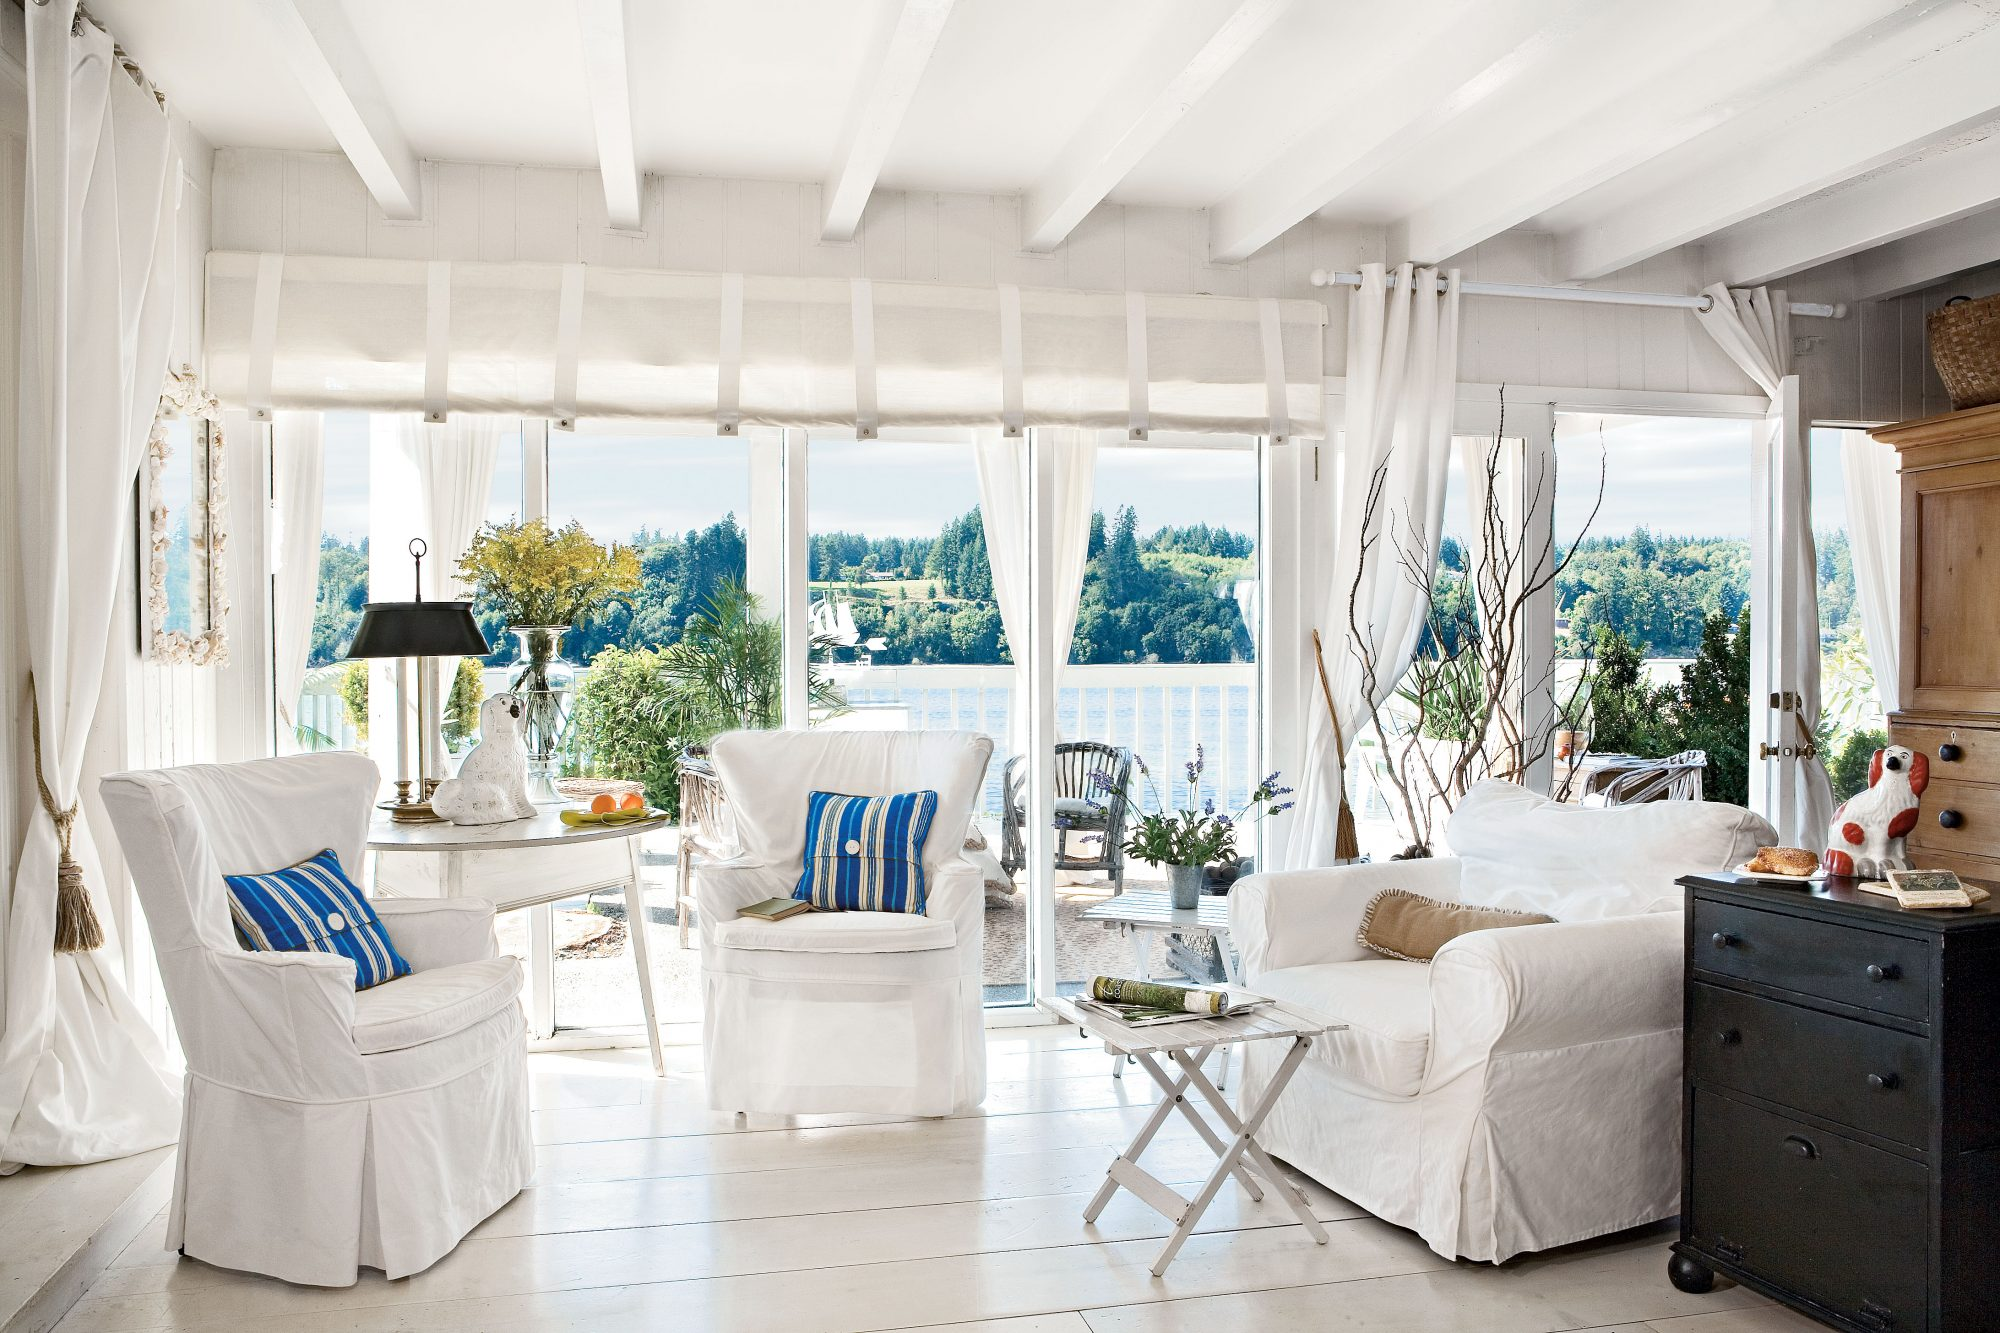 The enclosed sunroom offers an ideal spot to sit and watch the bay while still protected from the elements. Even on stormy evenings, the room offers thrilling views.